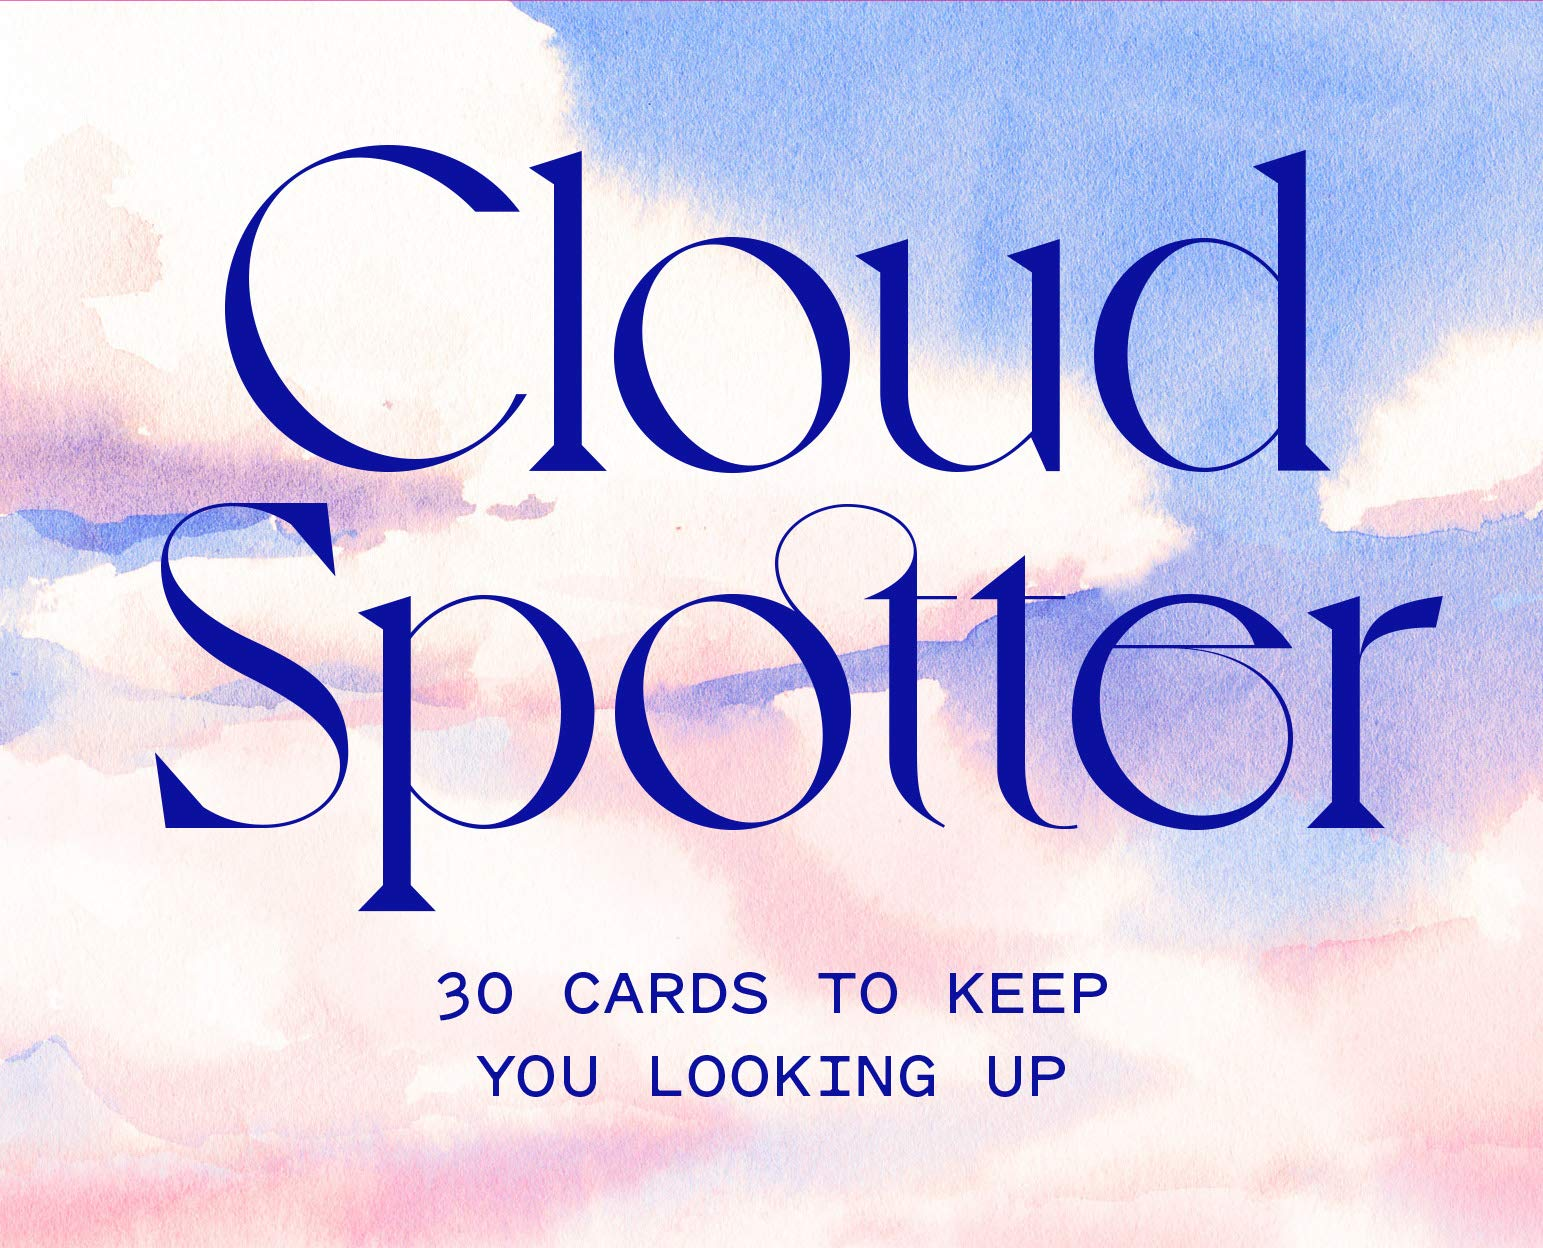 Cloud Spotter: 30 Cards to Keep You Looking Up